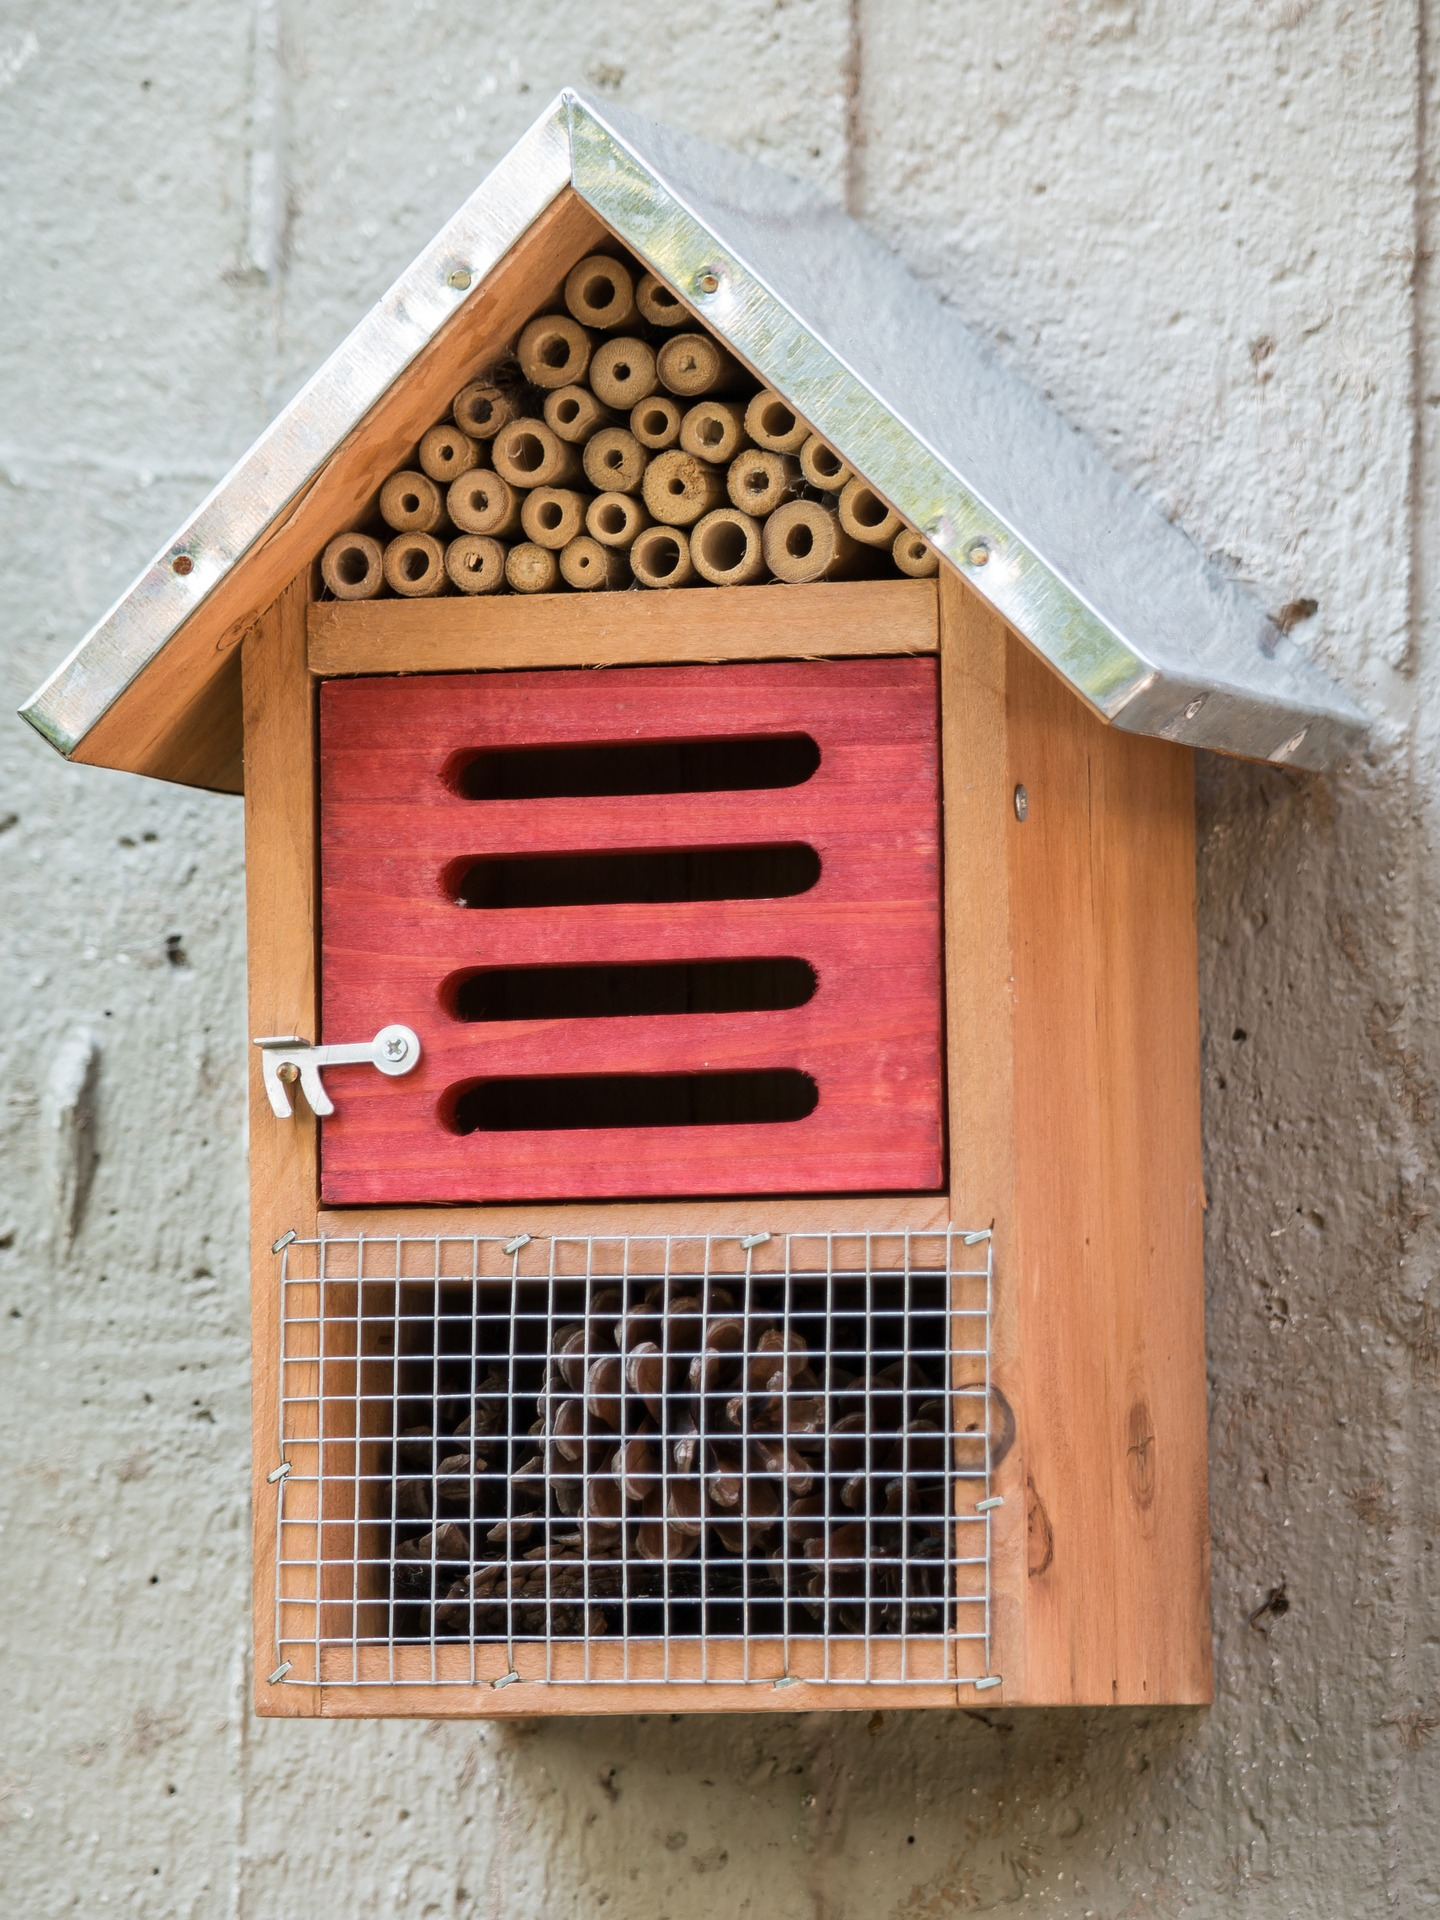 Attract Bees - Attract mason bees - Mason bee nesting - Bee hotel 2